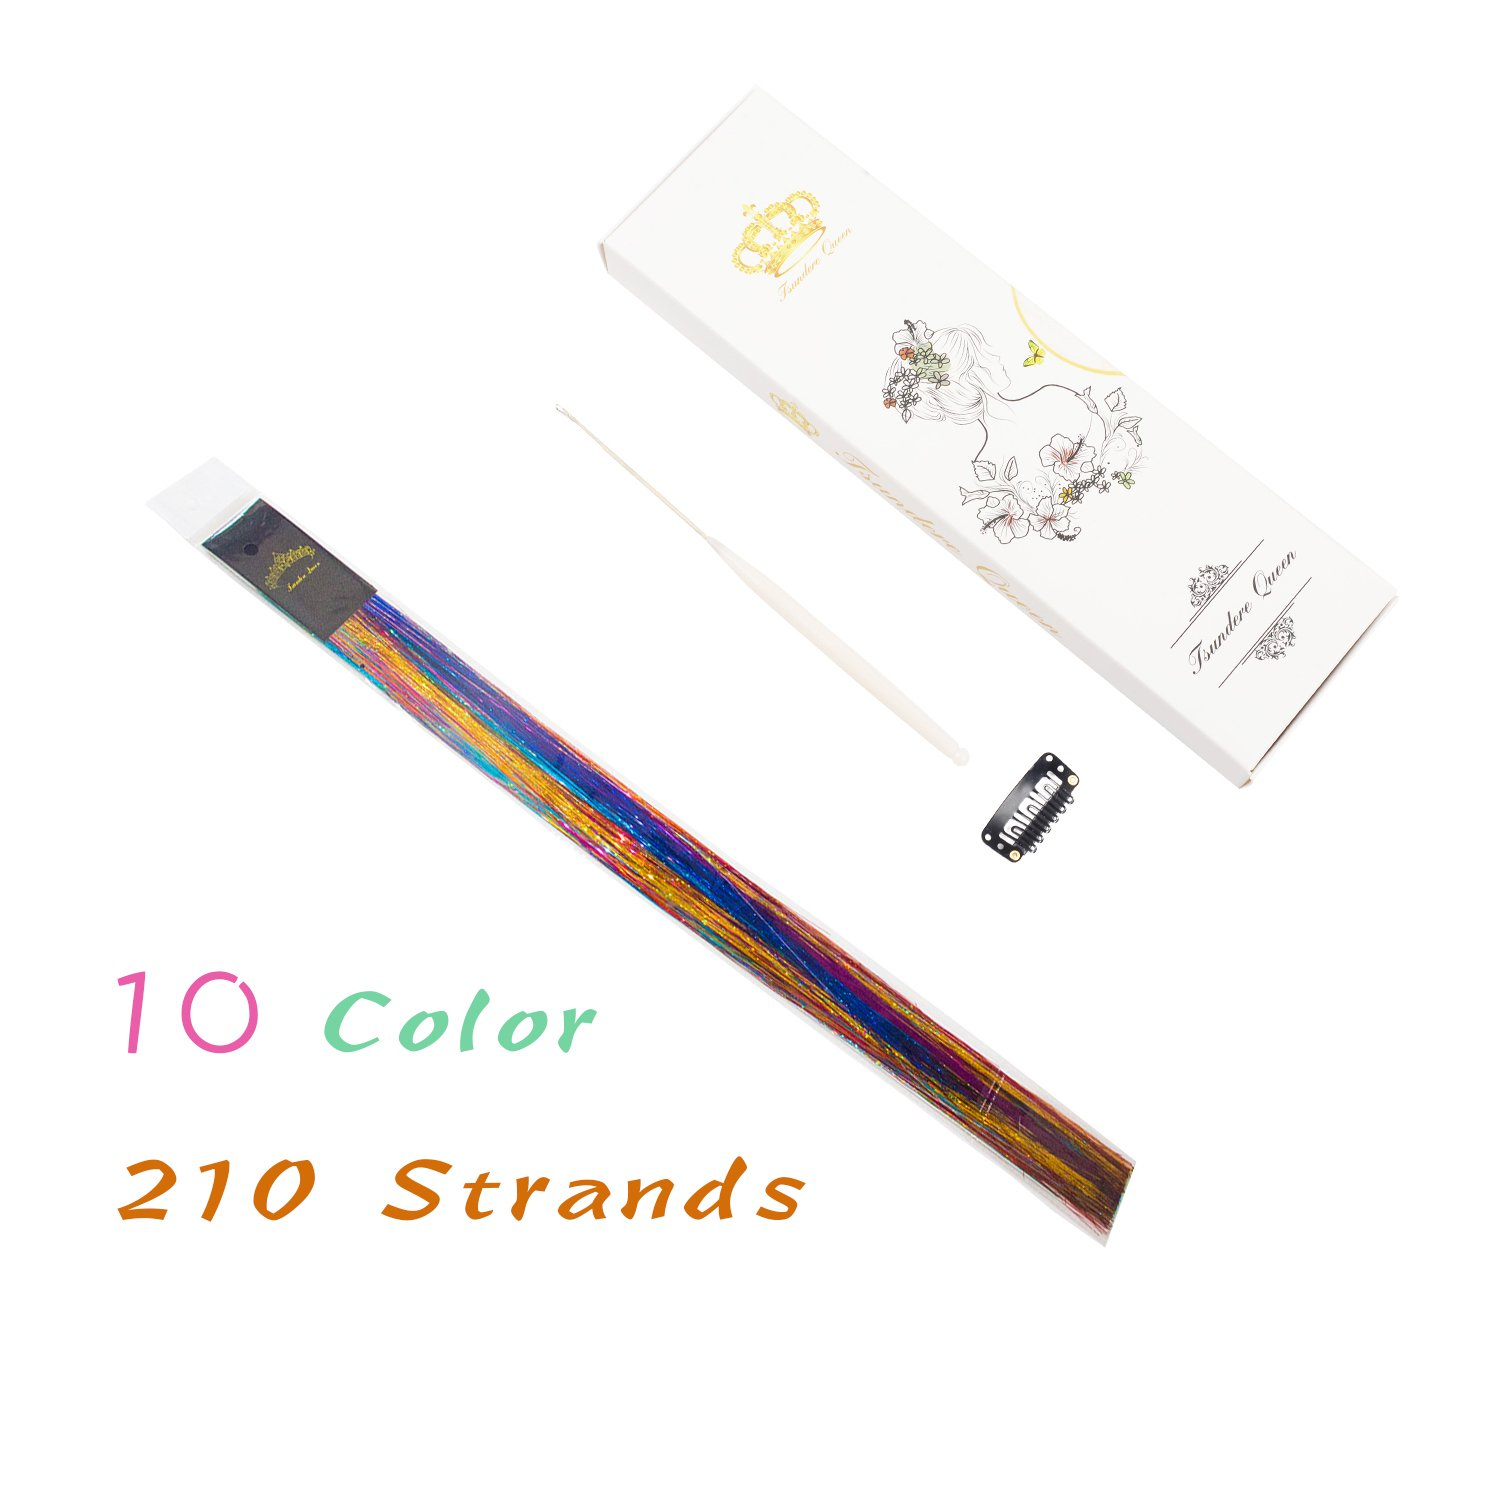 40'' Hair Tinsel 210 Strands 10 Color (Sparking Gold, Green, Hot Pink, Rainbow, Champagne Gold, Crimson, Sky Blue, Sapphire Blue, Silver, Violet)